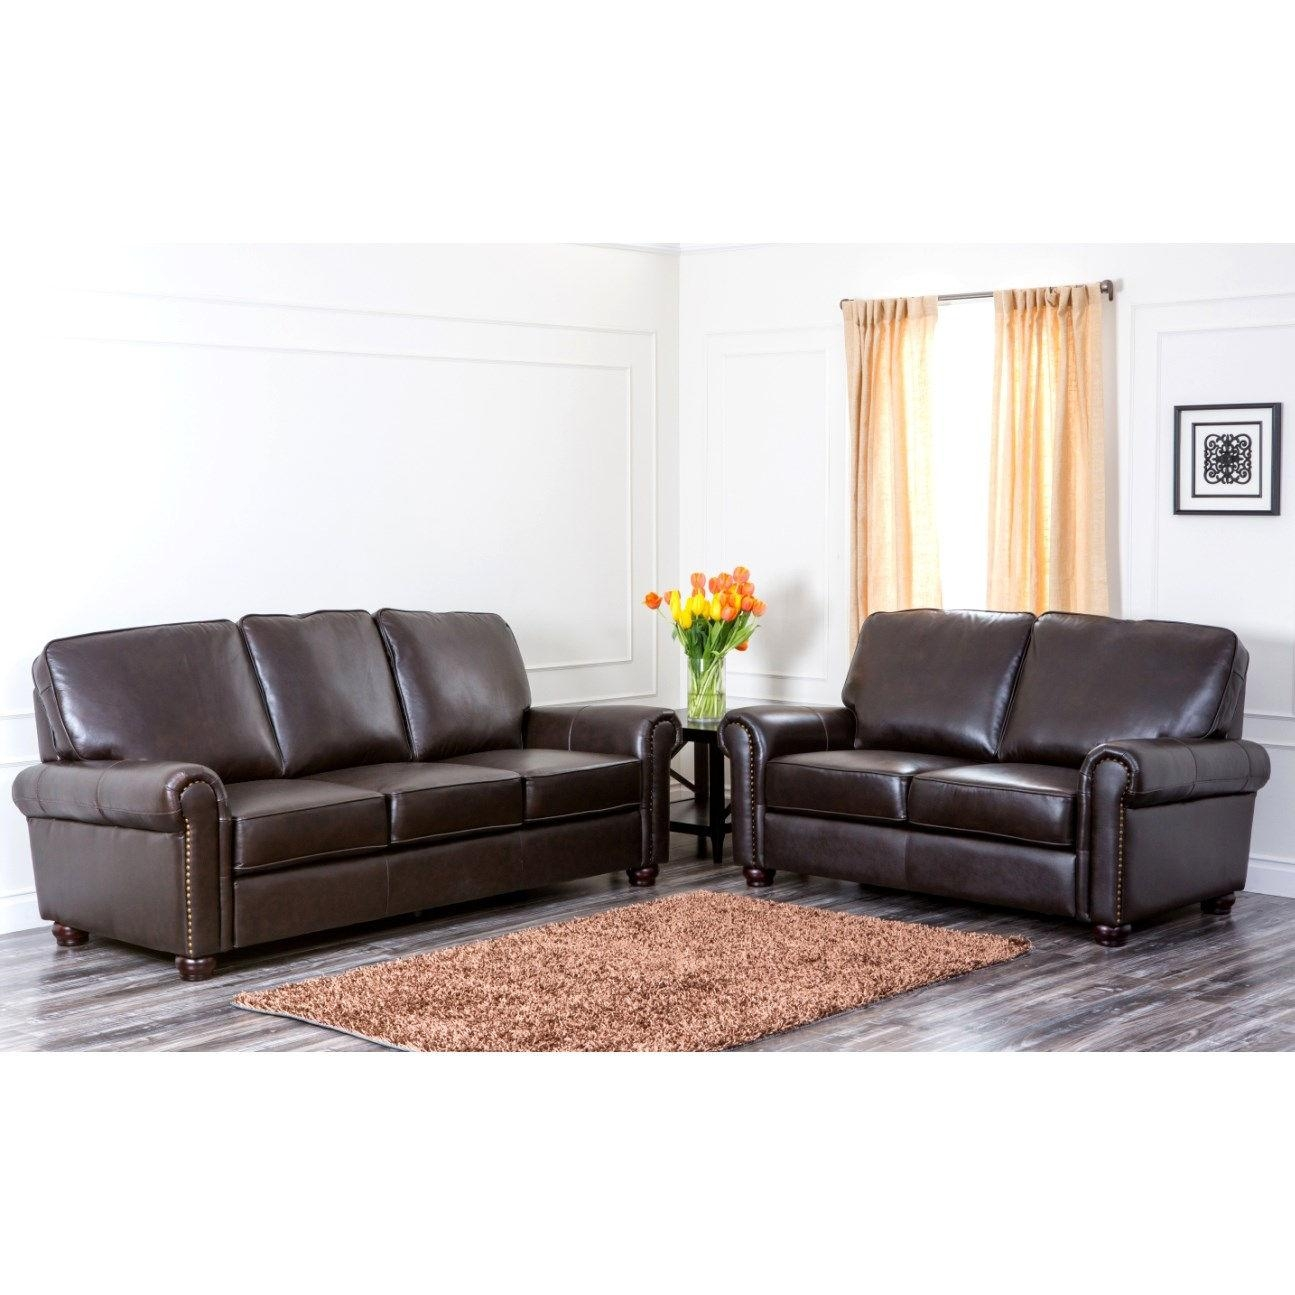 Sofas Center : Abbyson Living Mp Gry Sofa Set At Costco Table Throughout Abbyson Living Sofas (View 6 of 20)